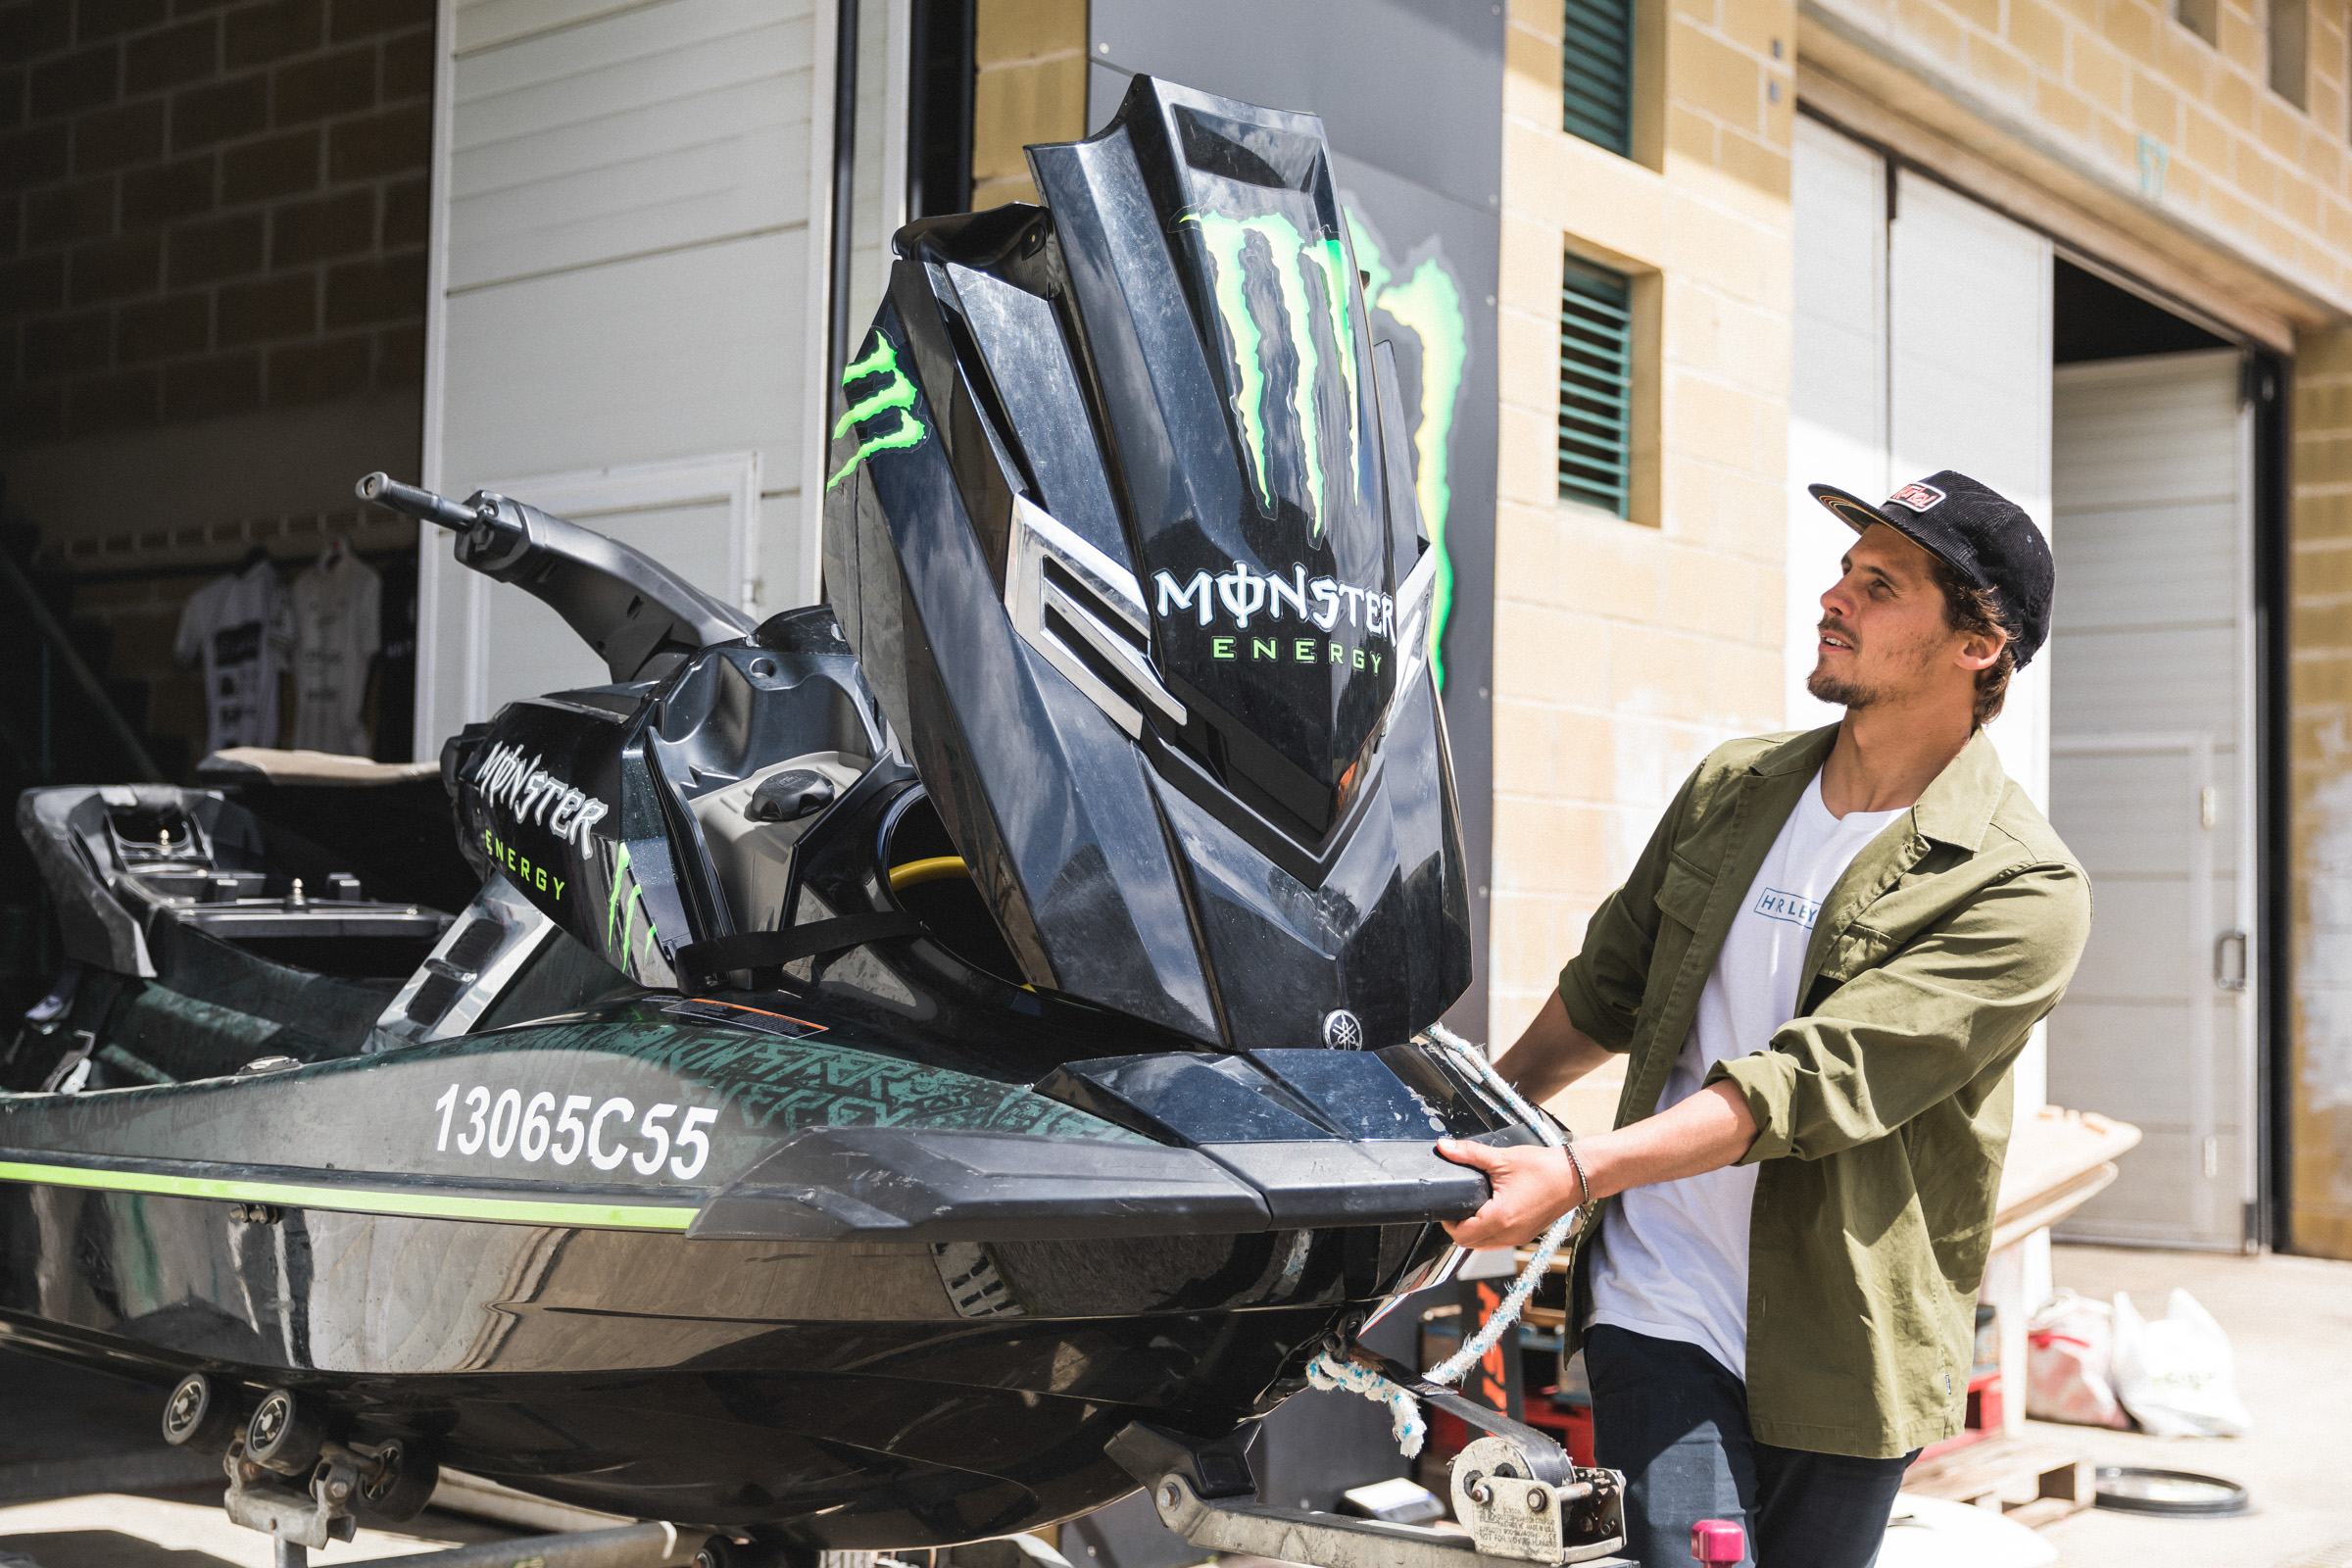 Monster Energy x Nic Von Rupp - Portugal